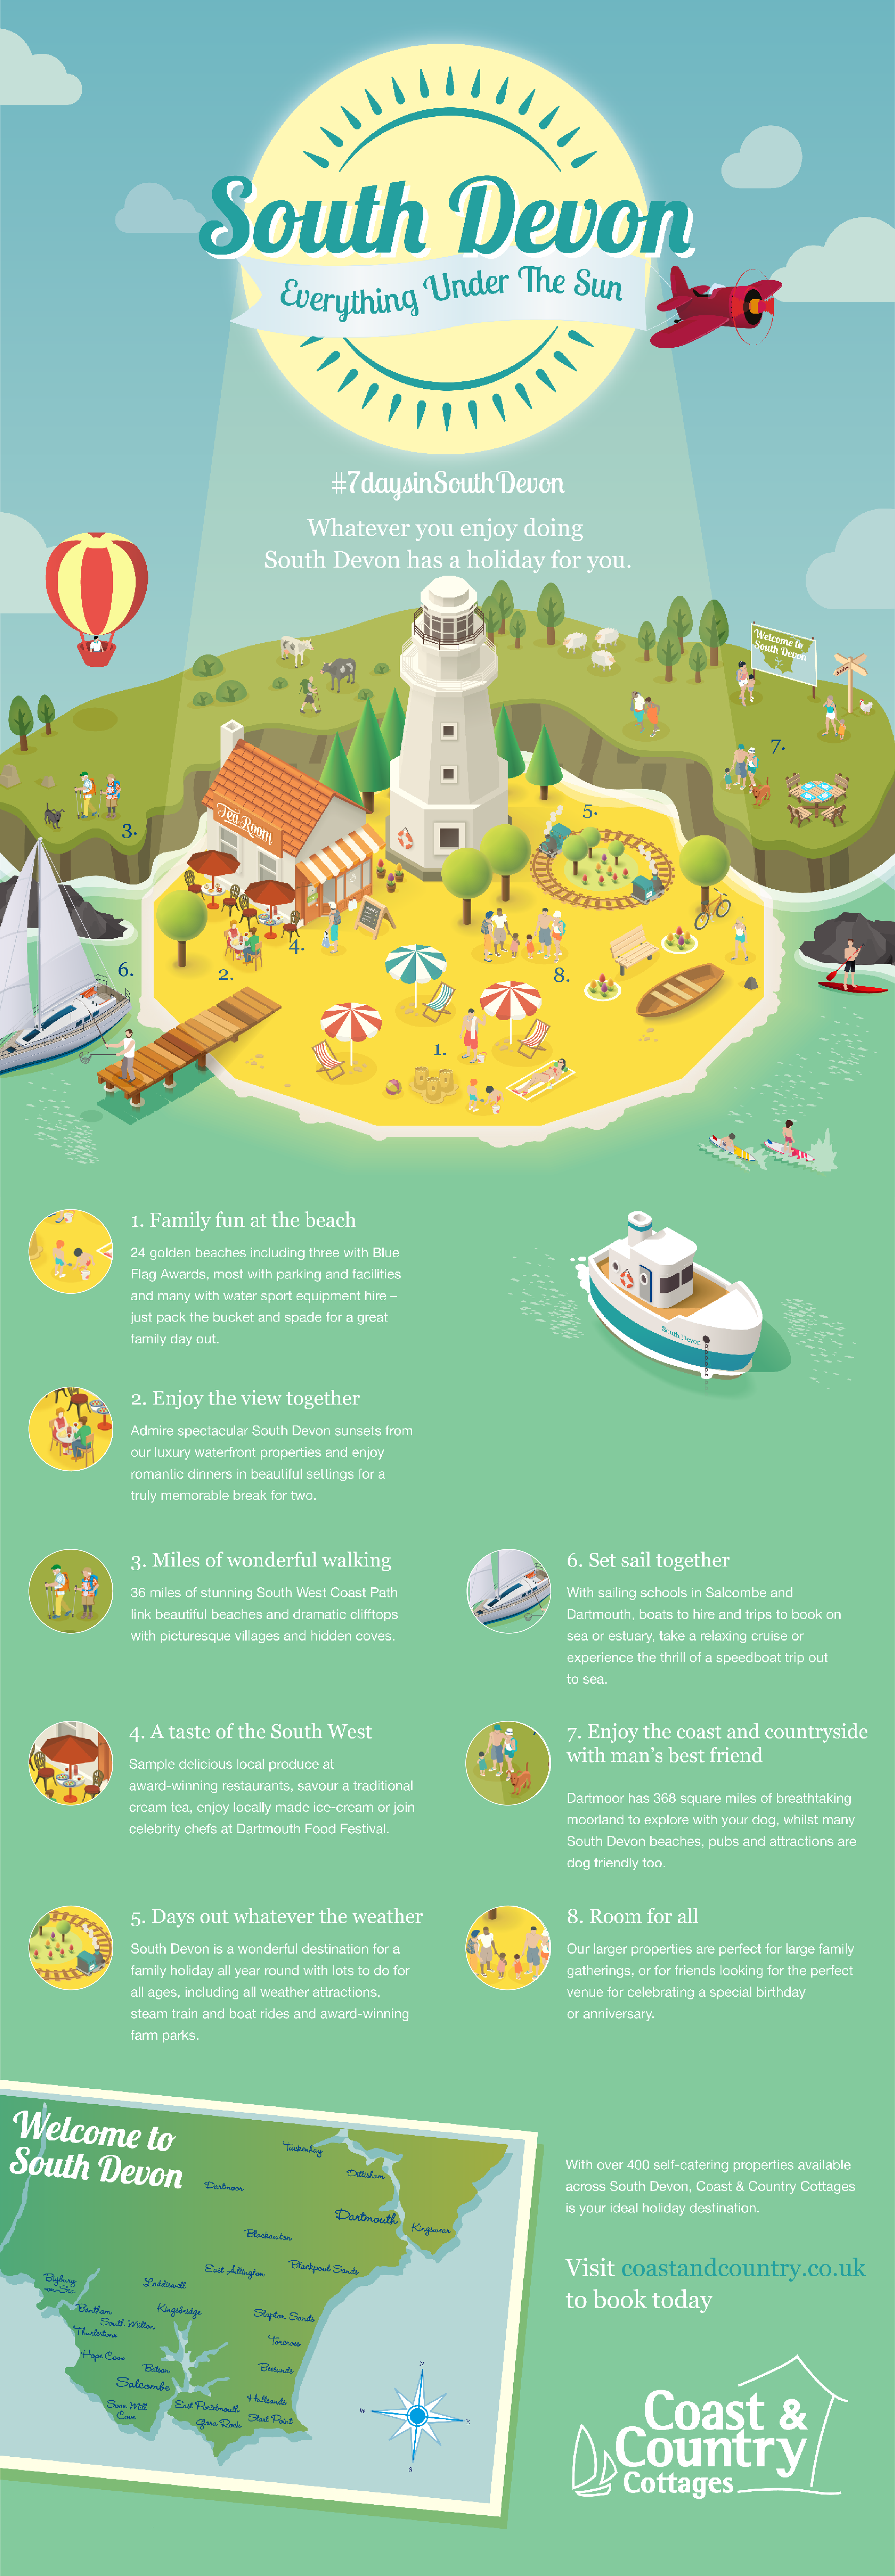 South Devon - Everything under the sun infographic